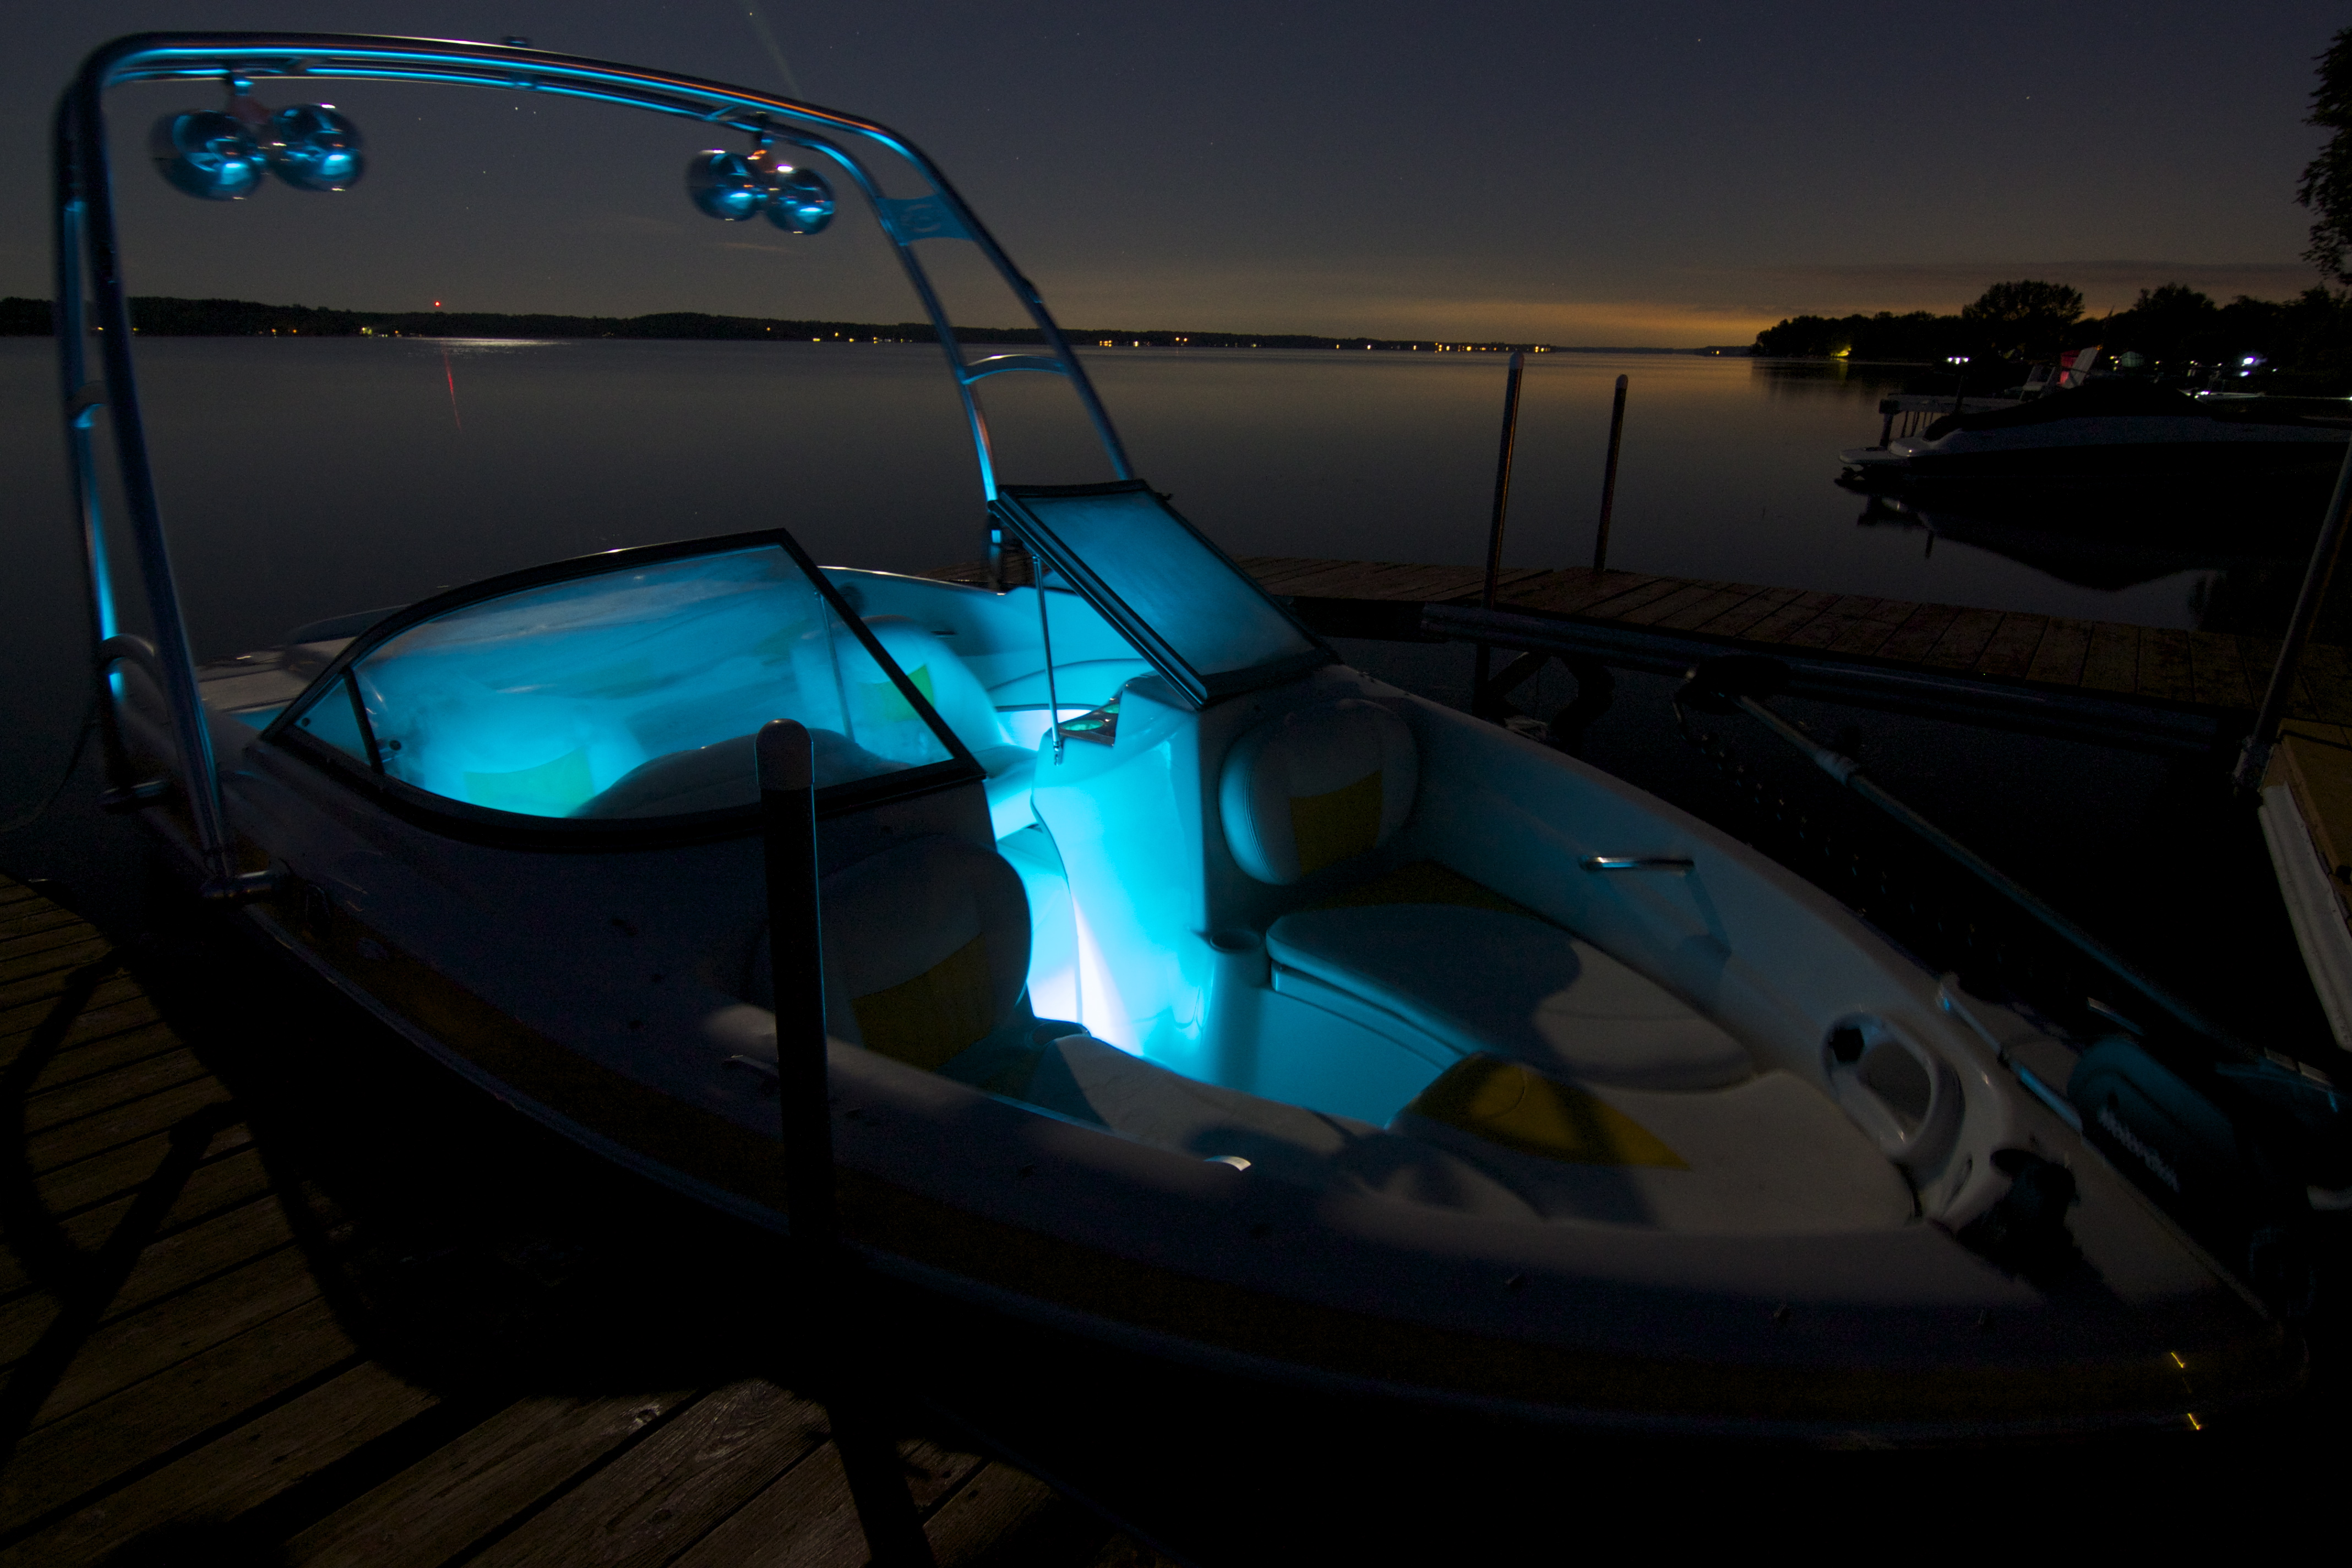 Blue Multigloz Led Boat Light Interior 2 Portfolio Aqualitz